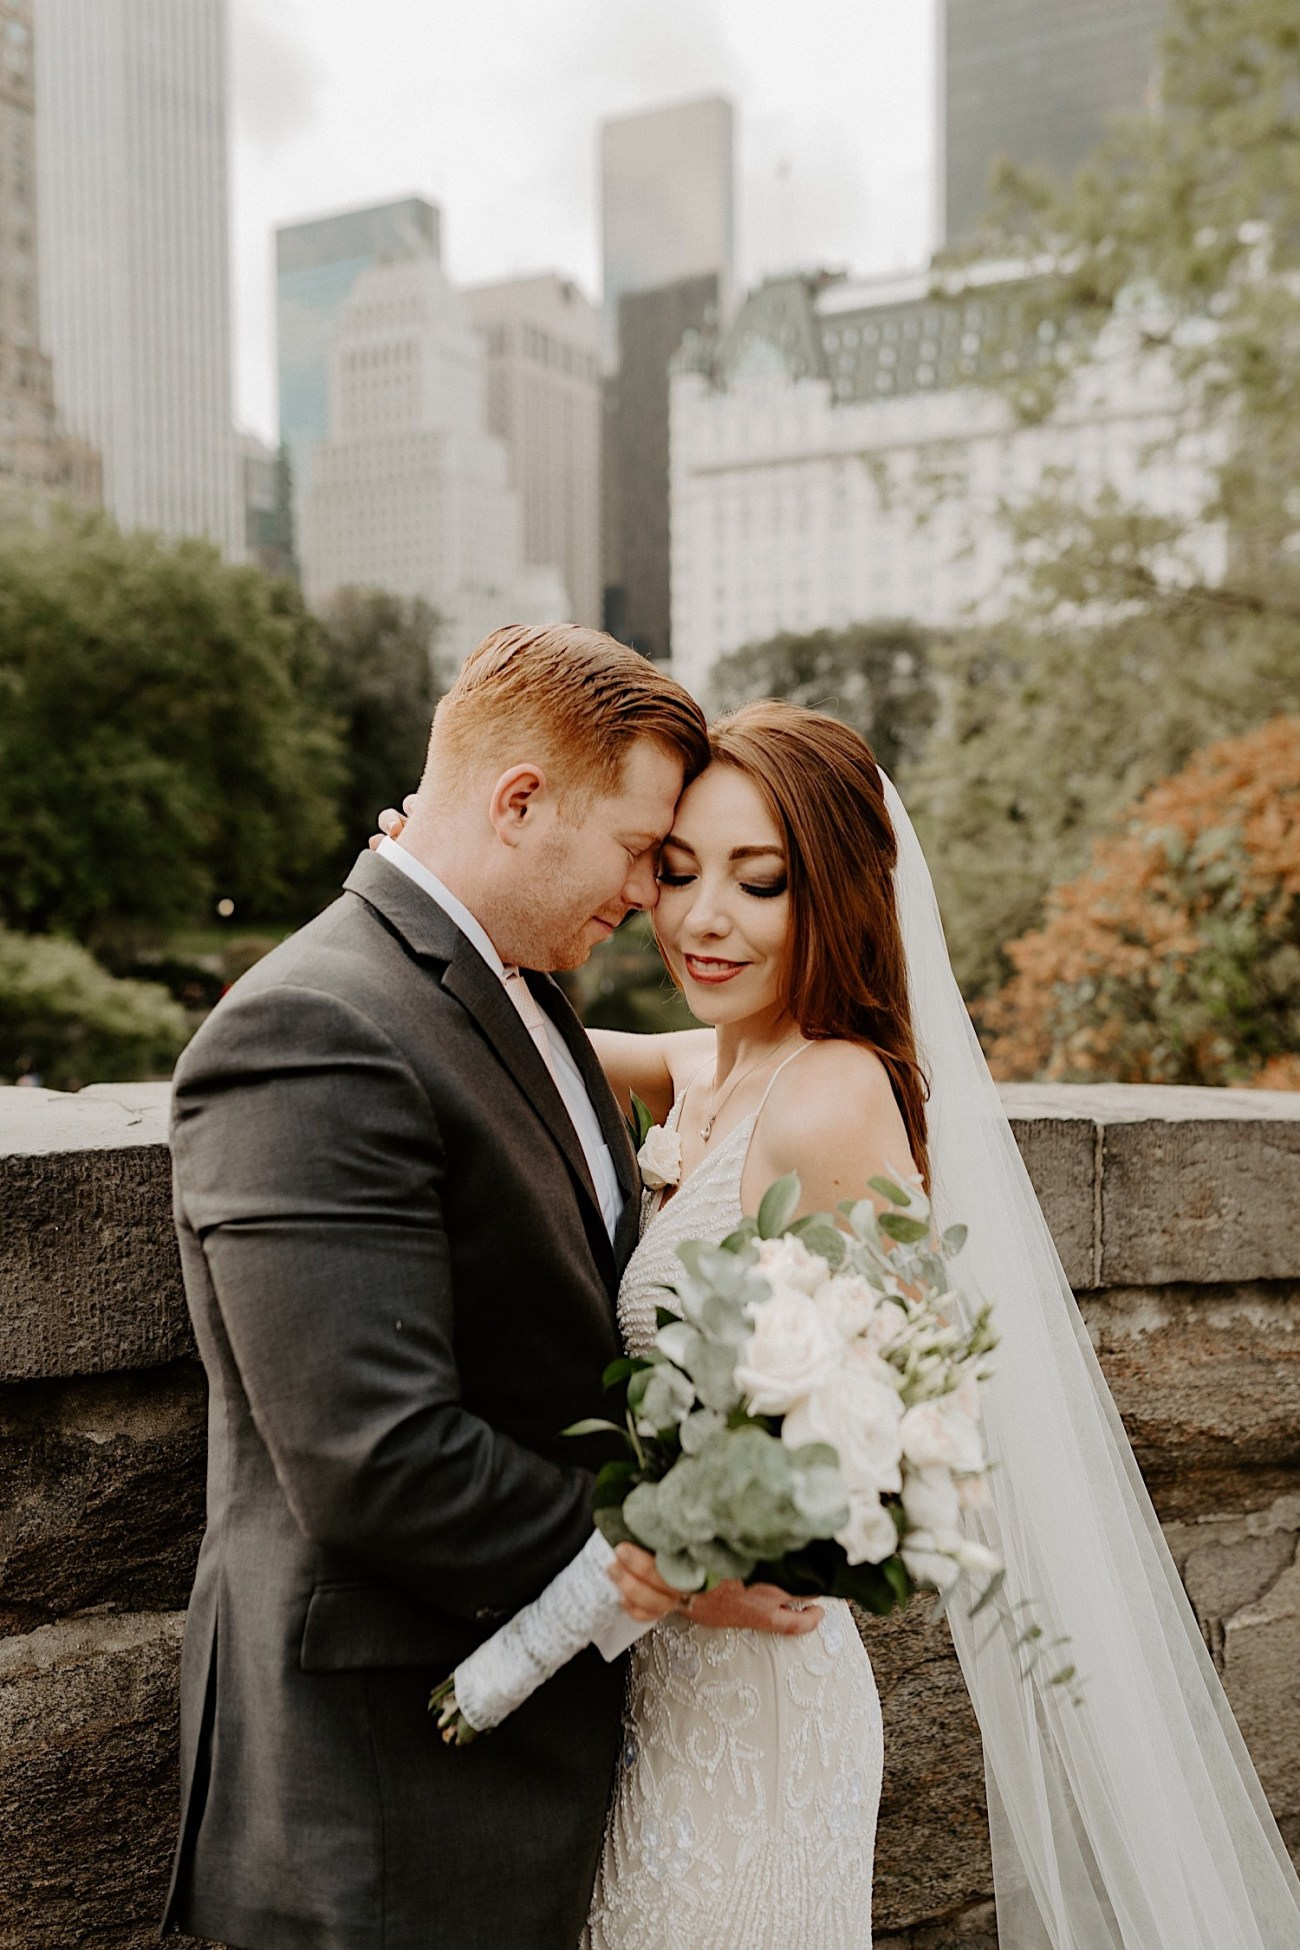 Central Park Wedding Photos Central Park Elopement NYC Wedding Photographer 03